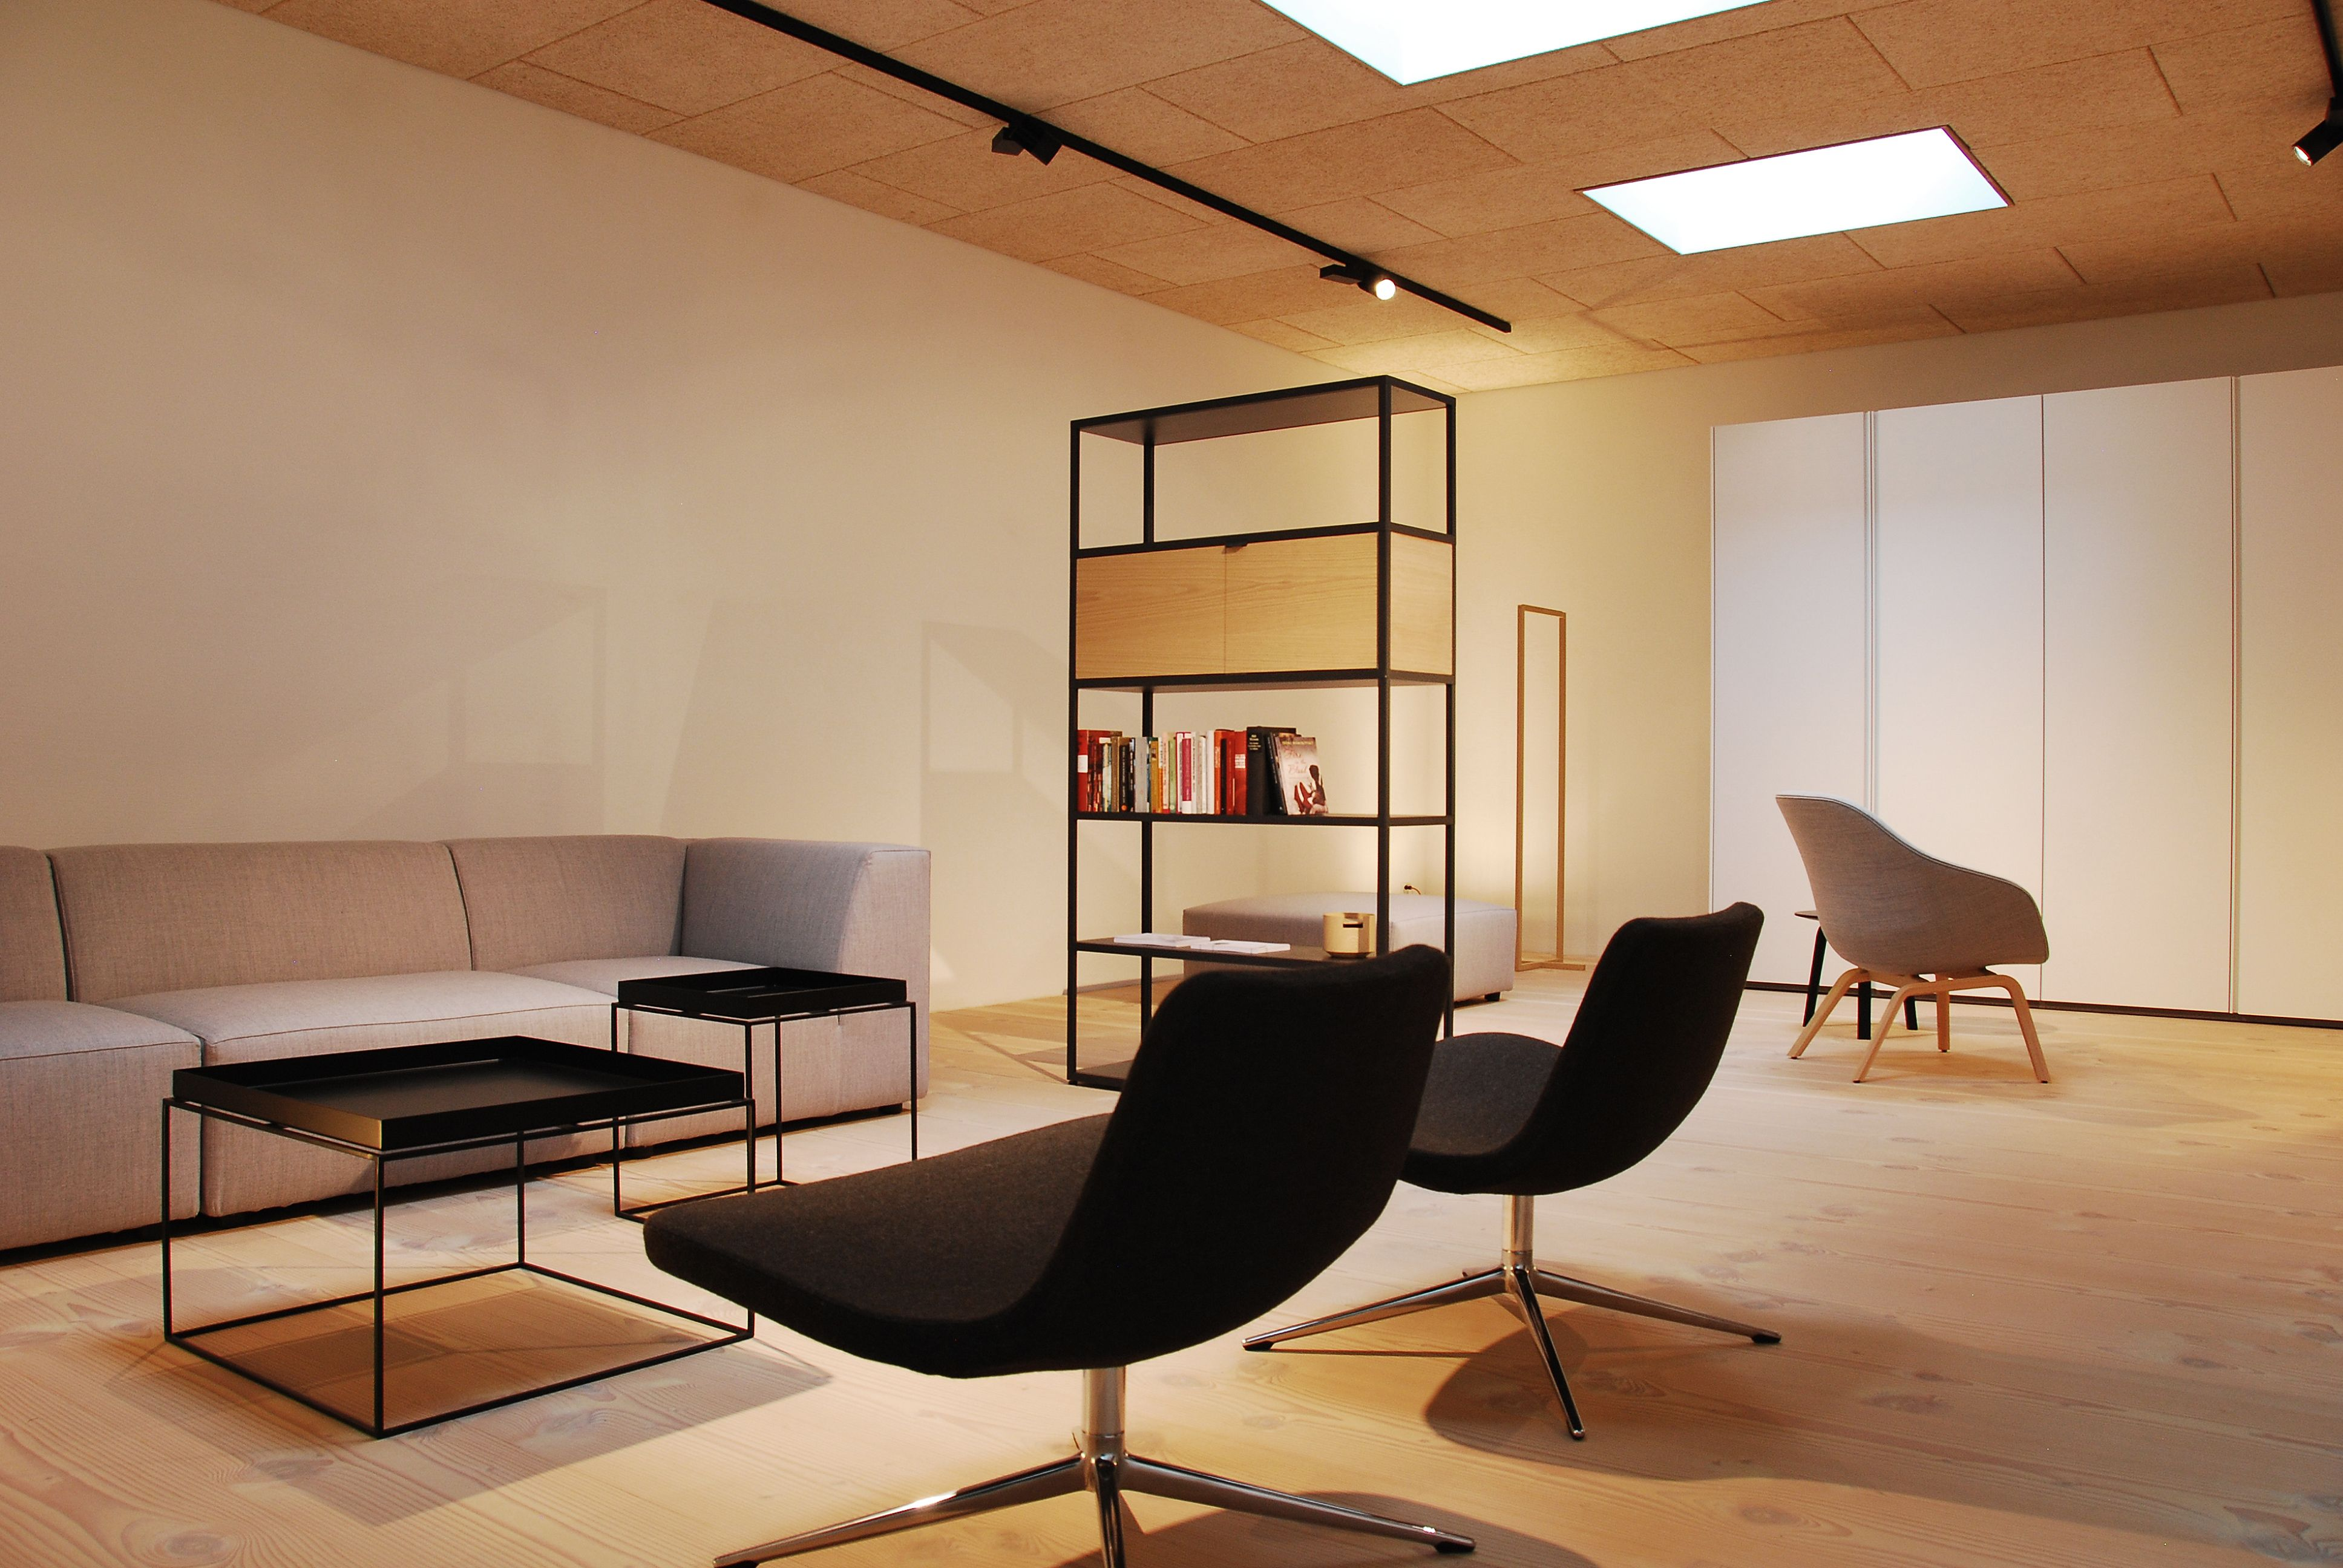 A04.CH Showroom Basel #HAY #A04 #Basel #Ray #AAL | A04.CH ...